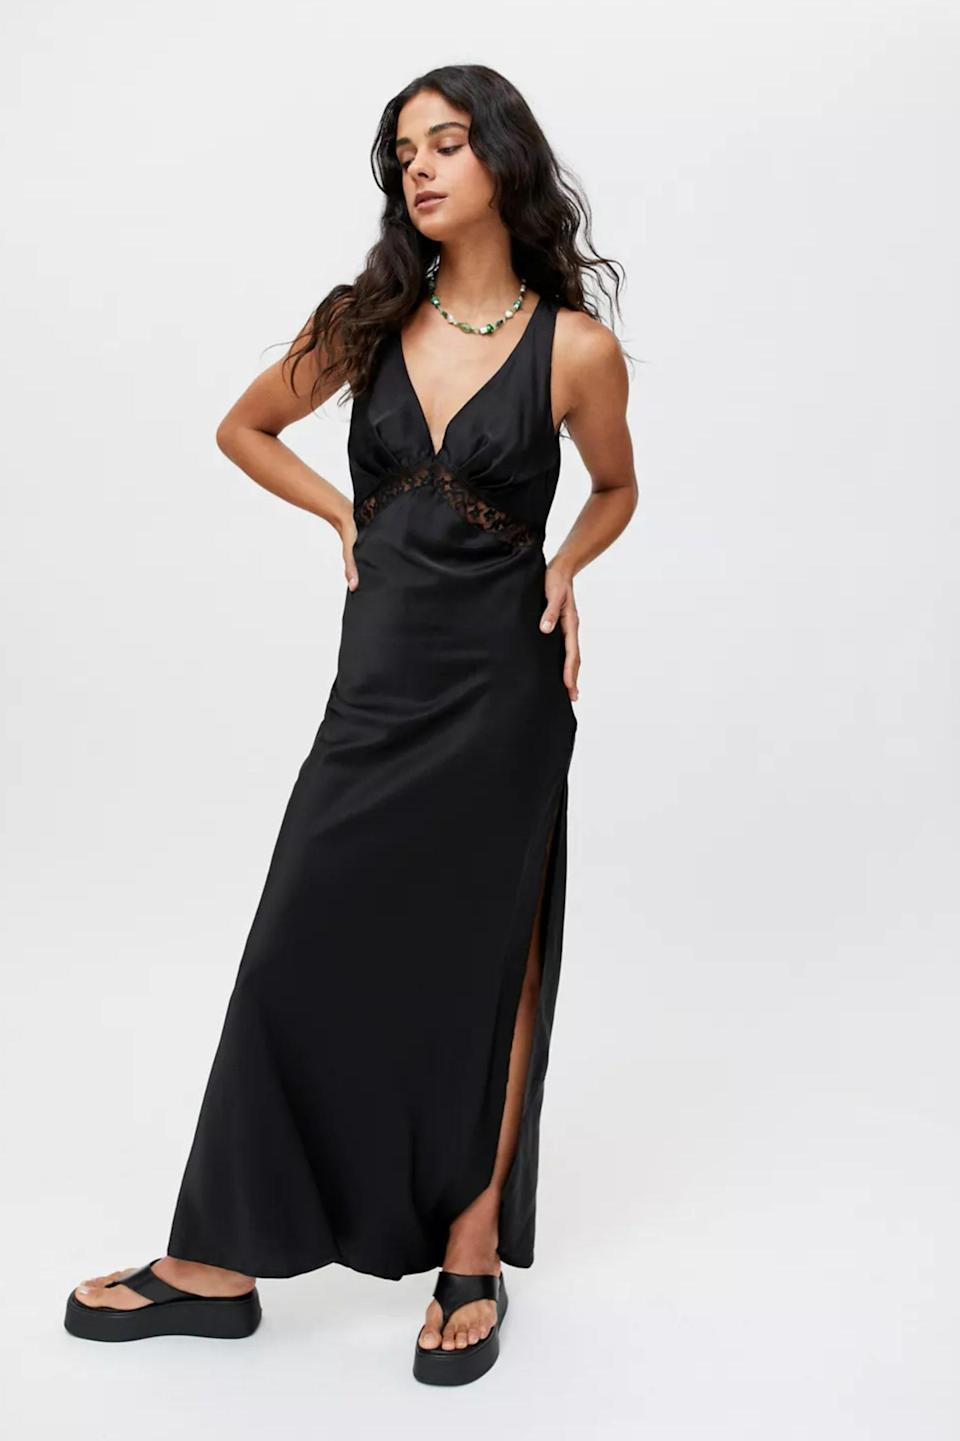 """If you have to wear black, we highly suggest this under-$100 Urban Outfitters find, which works for formal weddings and elegant garden weddings alike. $79, Urban Outfitters. <a href=""""https://www.urbanoutfitters.com/shop/lioness-dakota-satin-maxi-slip-dress"""" rel=""""nofollow noopener"""" target=""""_blank"""" data-ylk=""""slk:Get it now!"""" class=""""link rapid-noclick-resp"""">Get it now!</a>"""